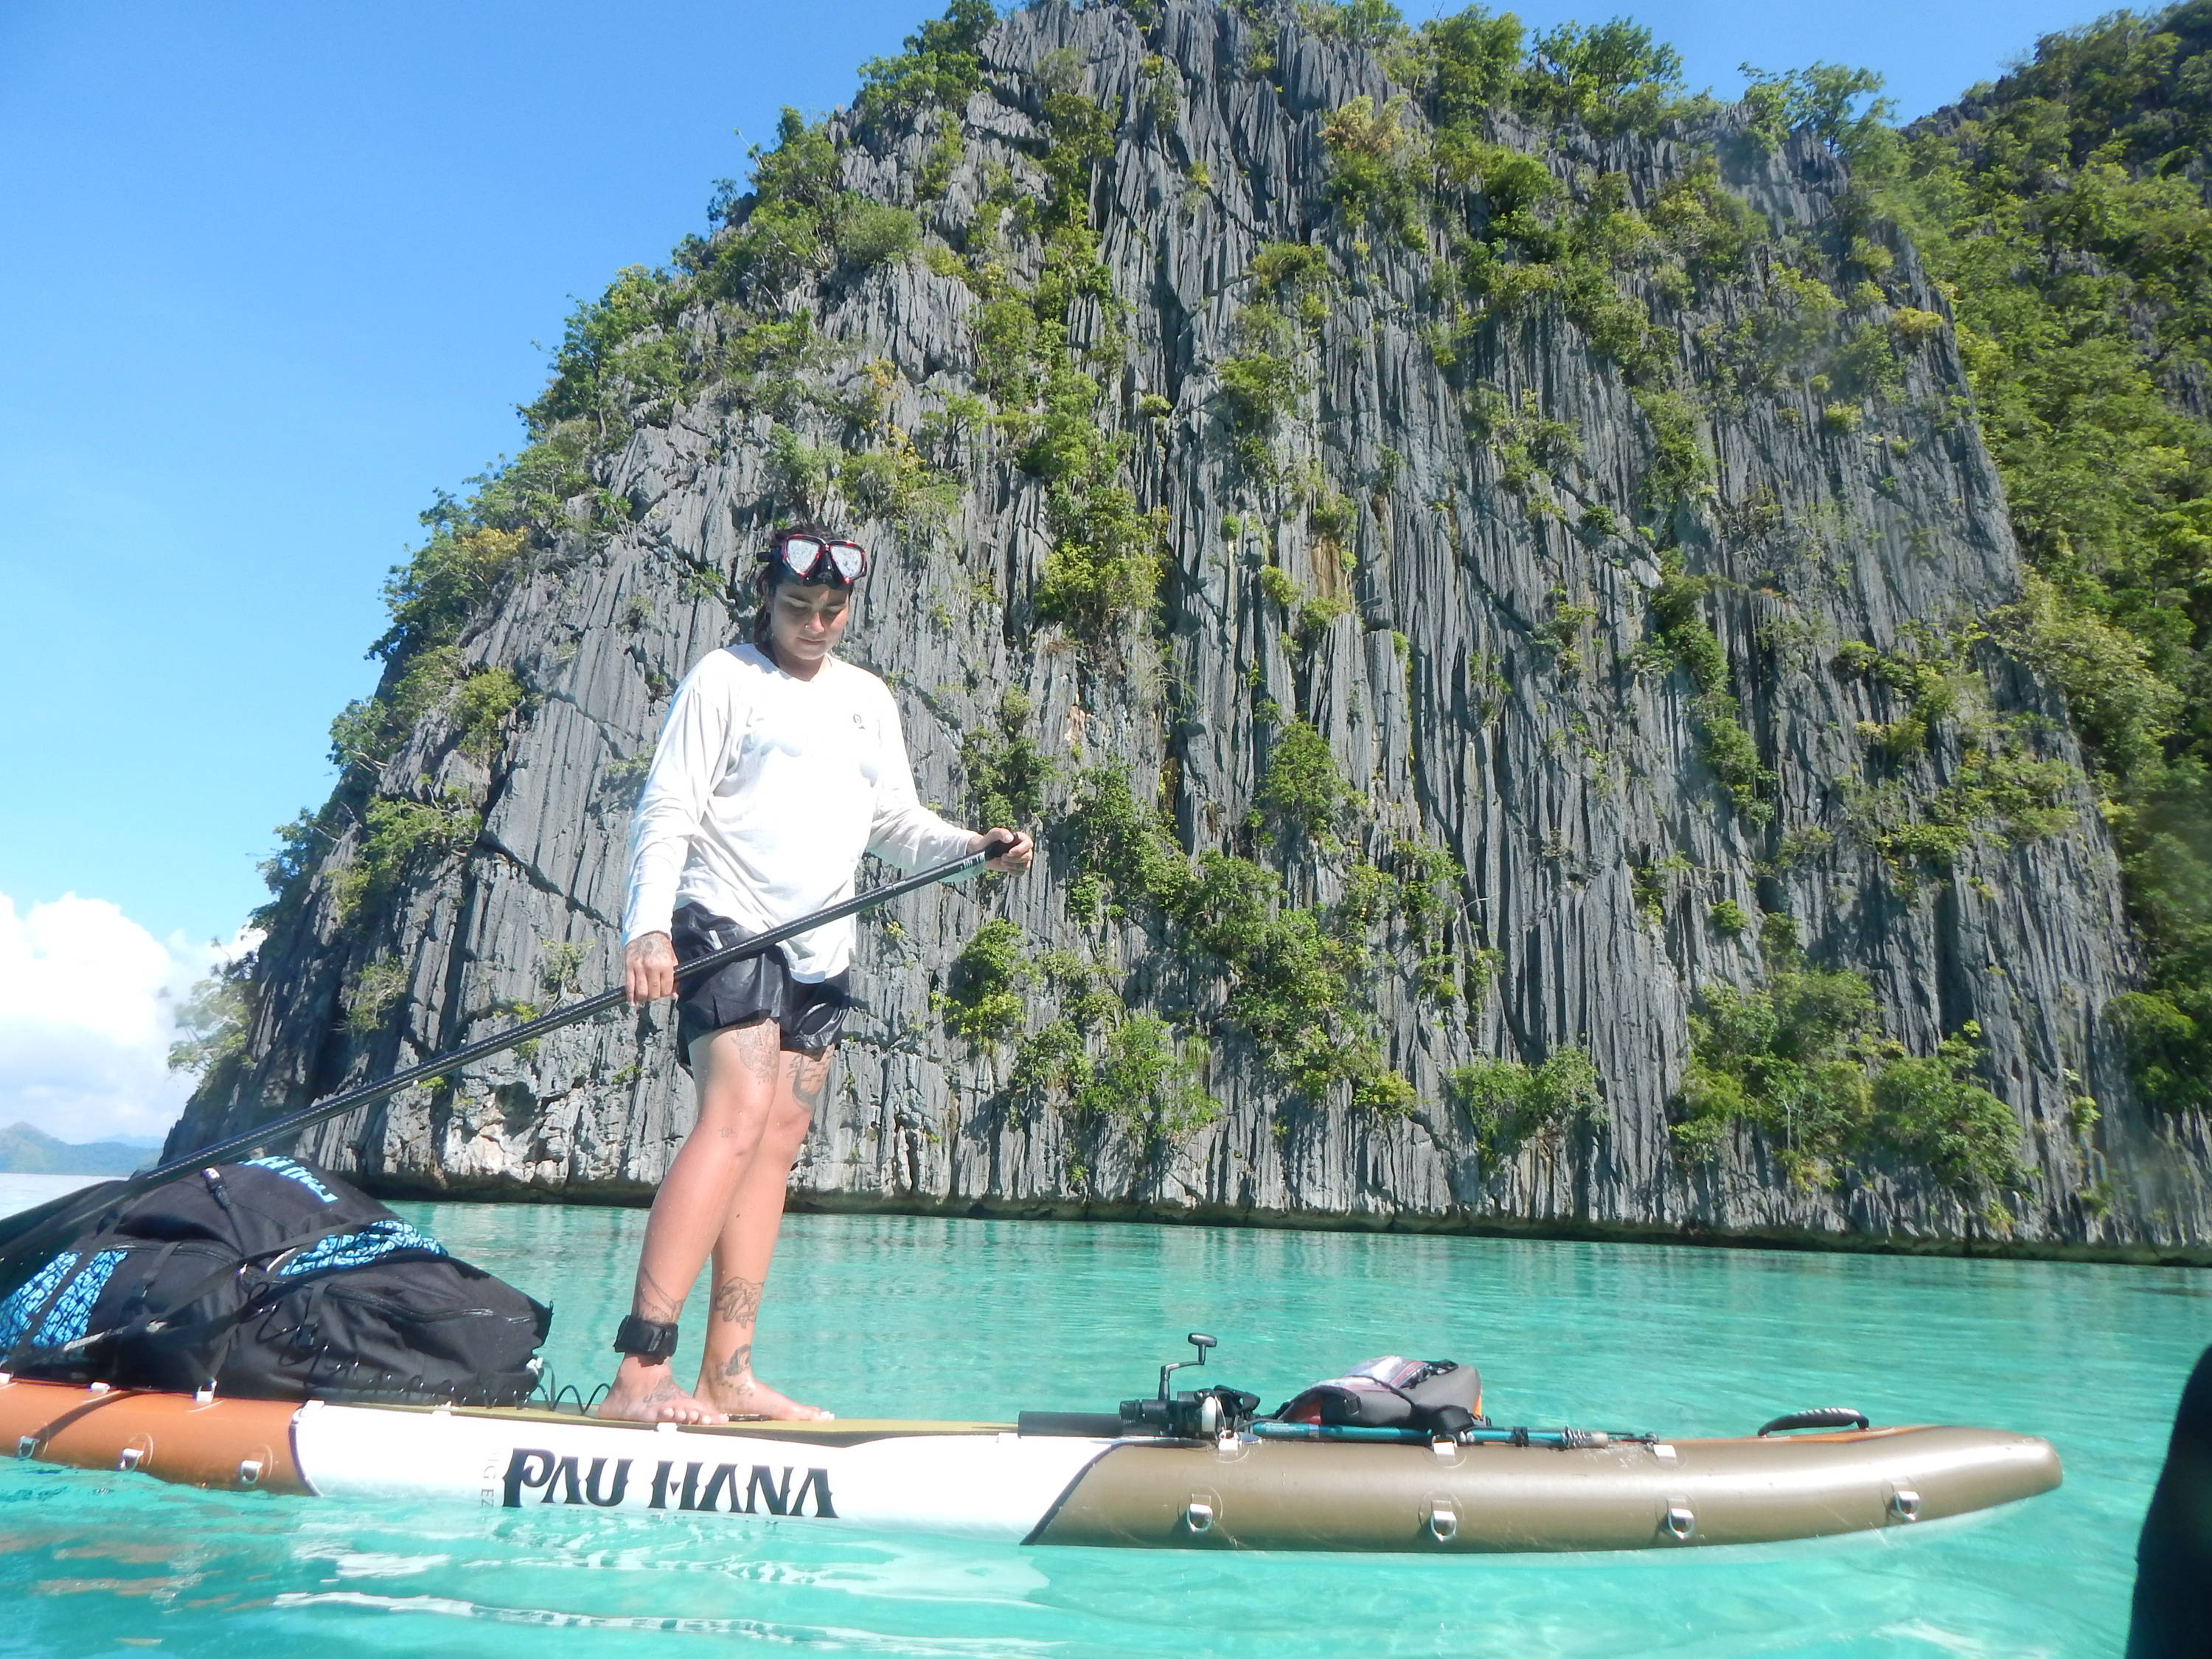 Stand up paddle board in the Philippines